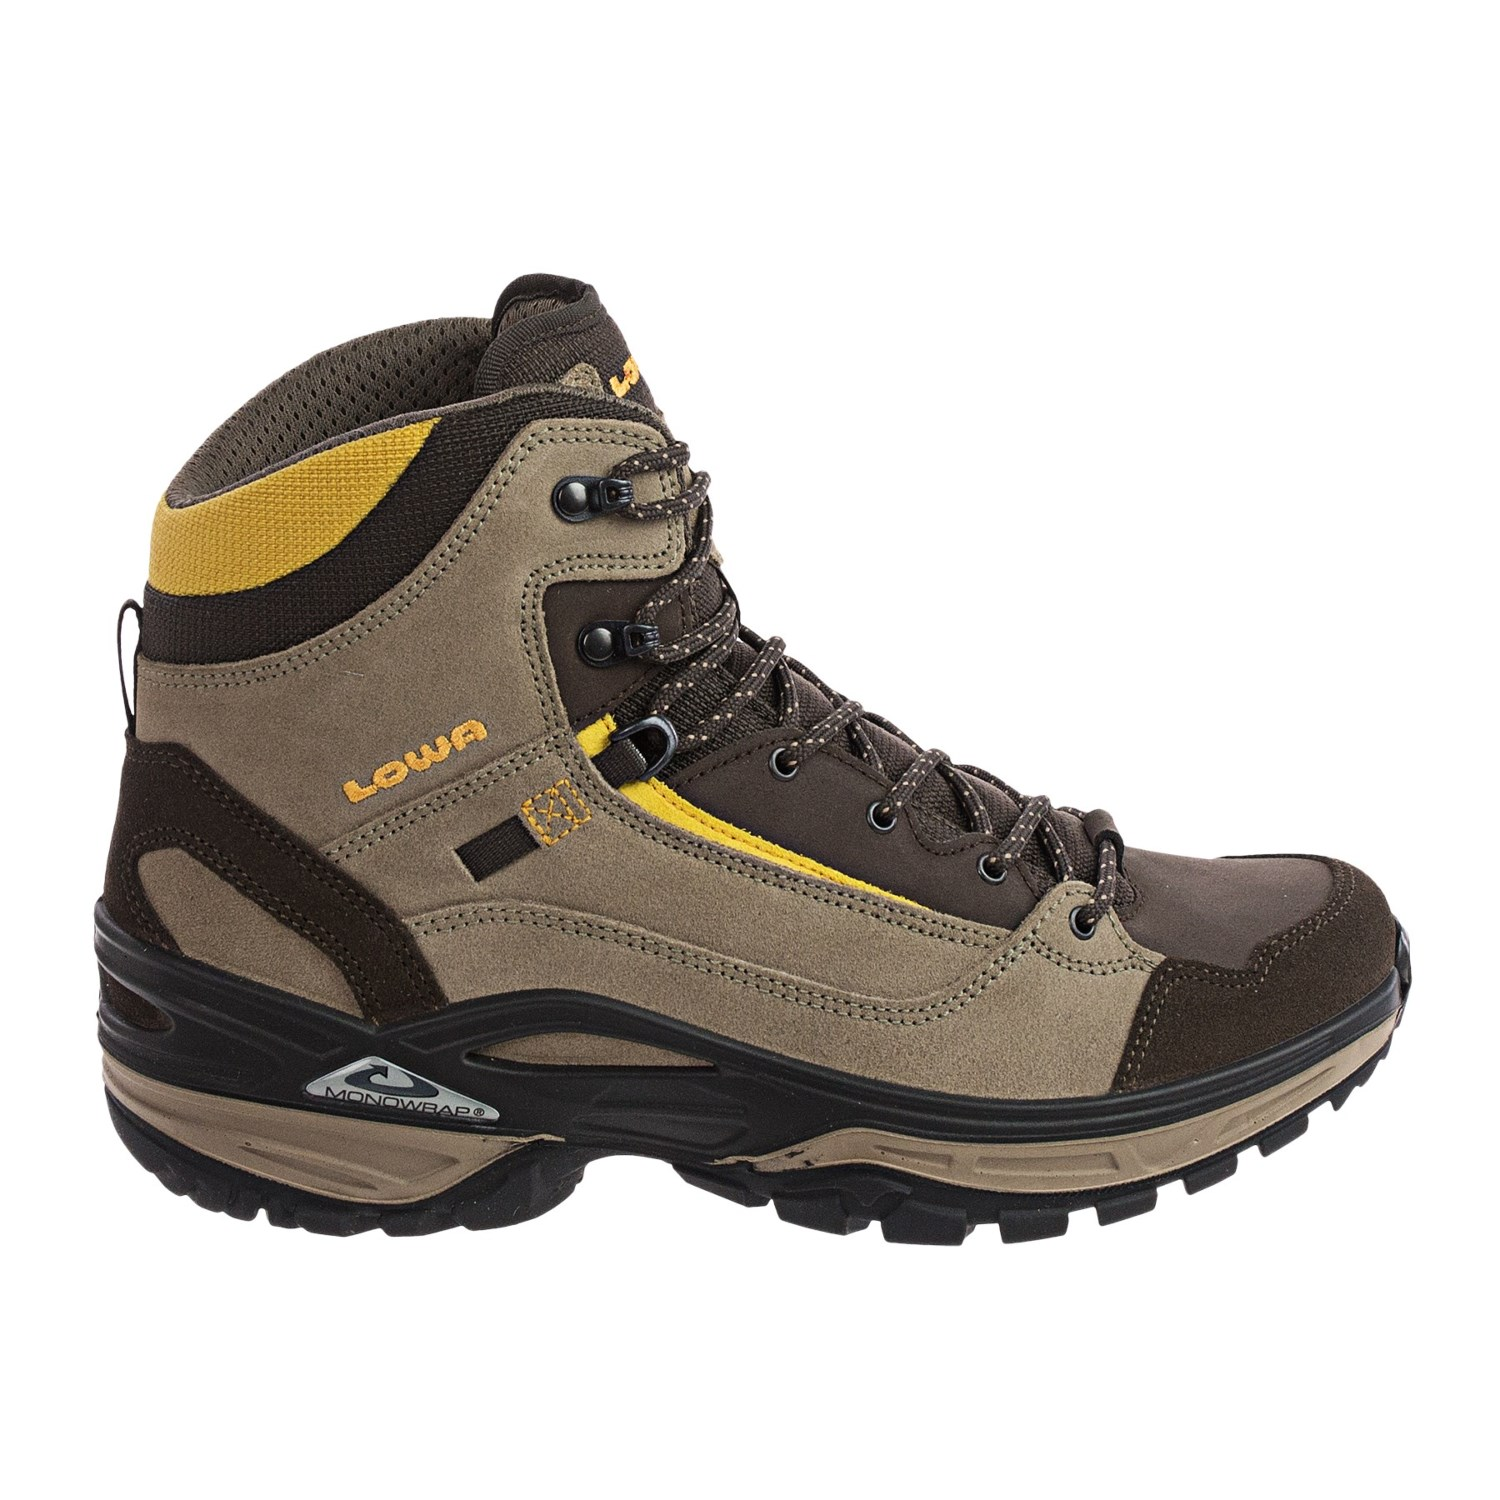 Lowa Tempest Mid Hiking Boots For Men 9821r Save 42